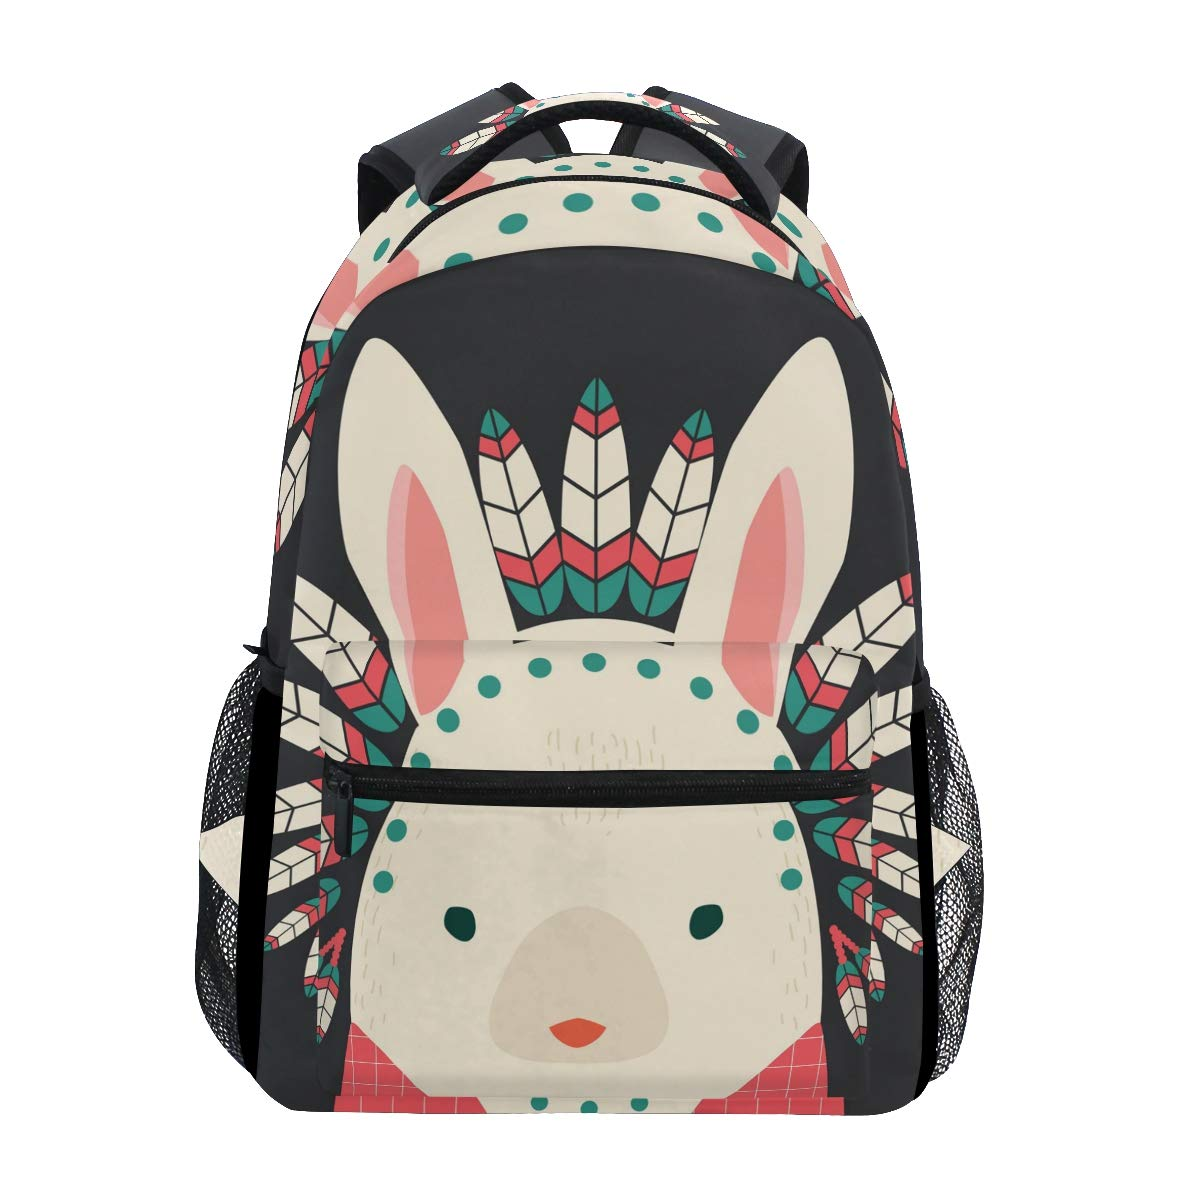 Sacs à Dos Backpacks Indian Hare with Feathers Bookbags Bag for Girls Kids Elementary